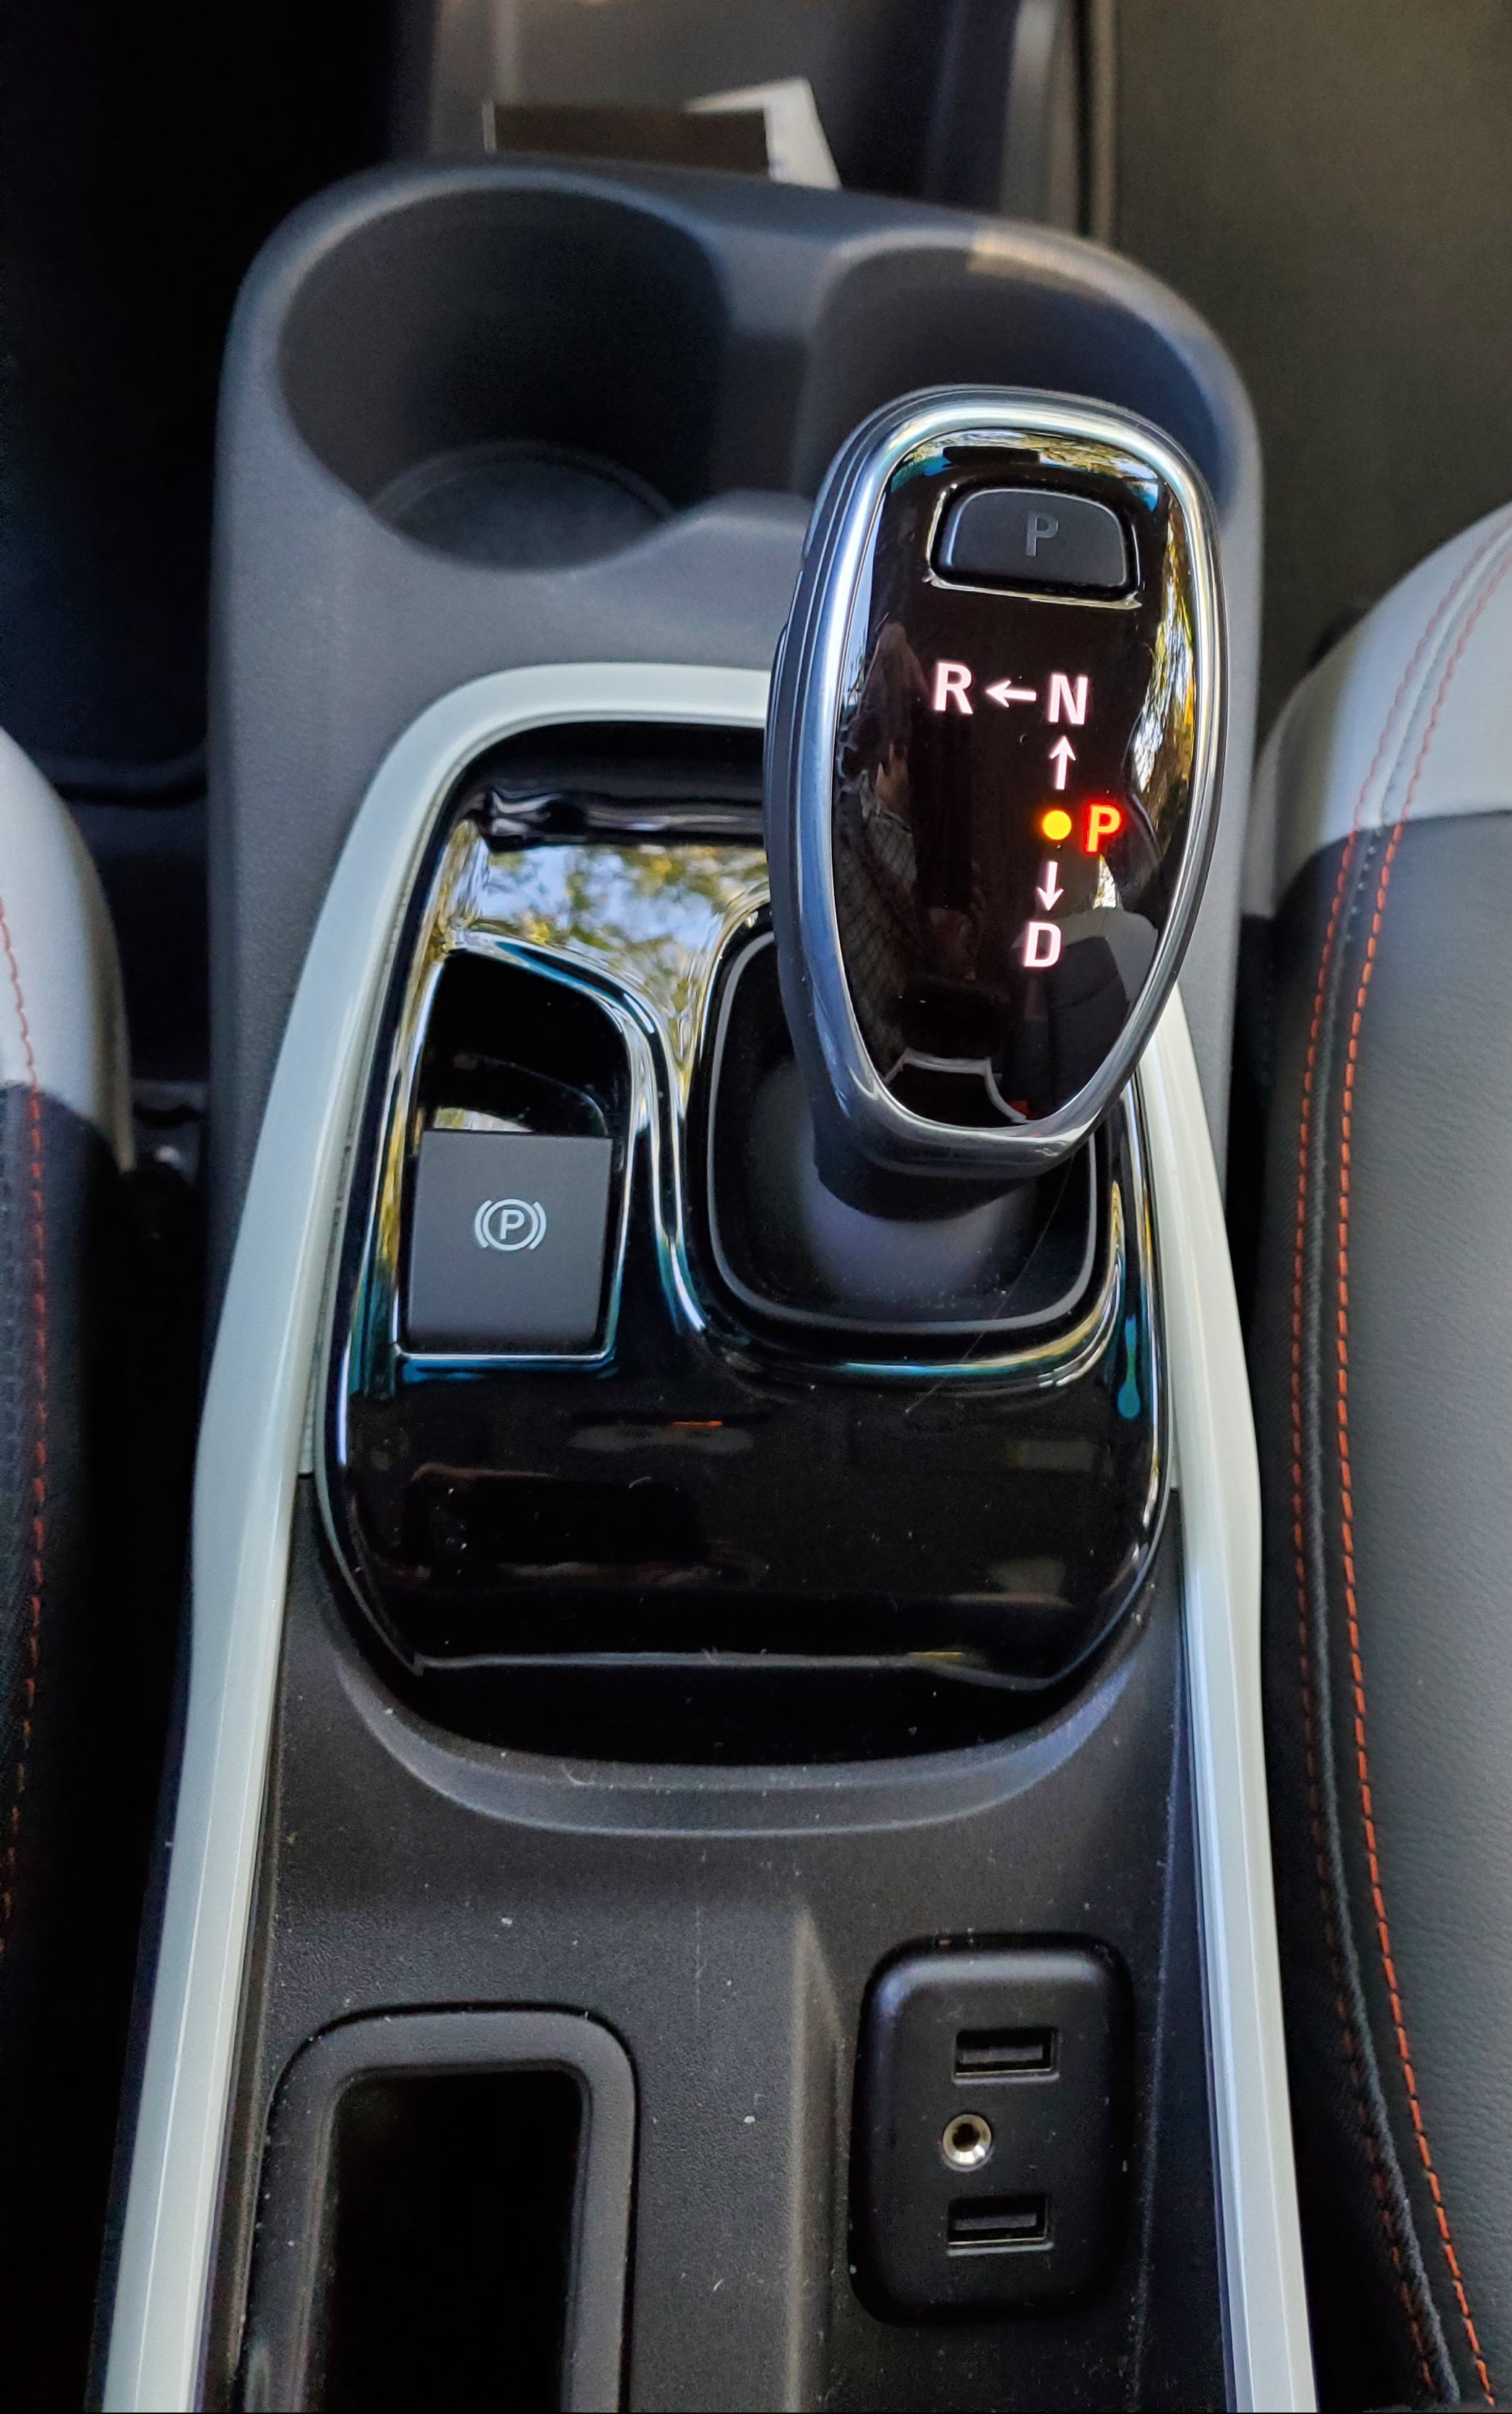 2020 Chevrolet Bolt EV Transmission Shift Stalk